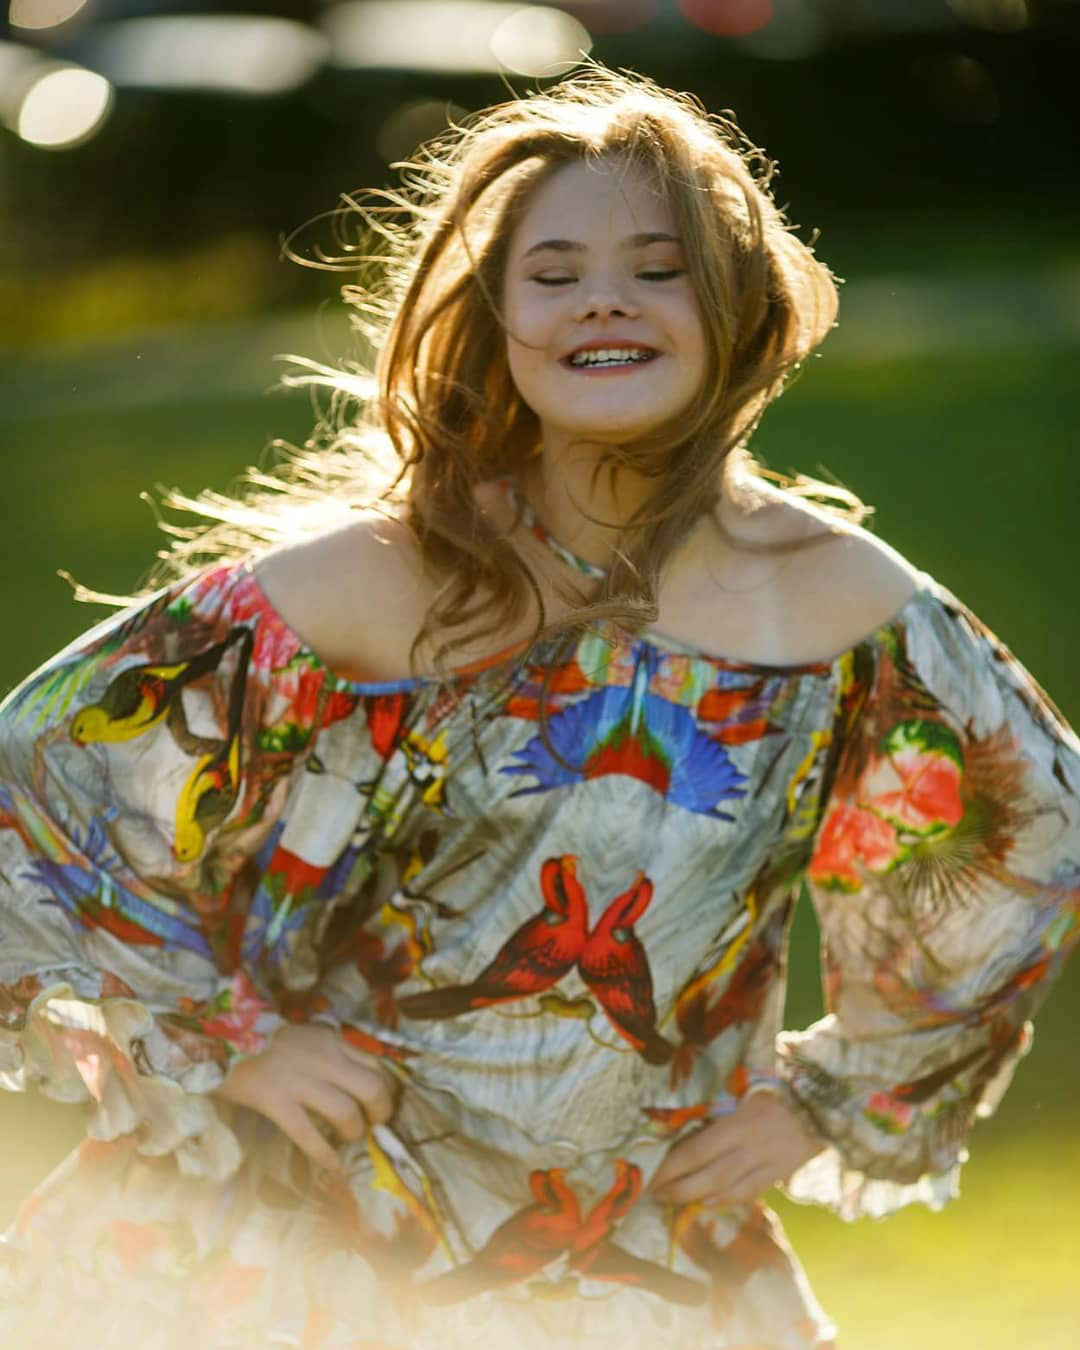 Downs Syndrome Model – Inspiring Girl on a Road to Success and Fame